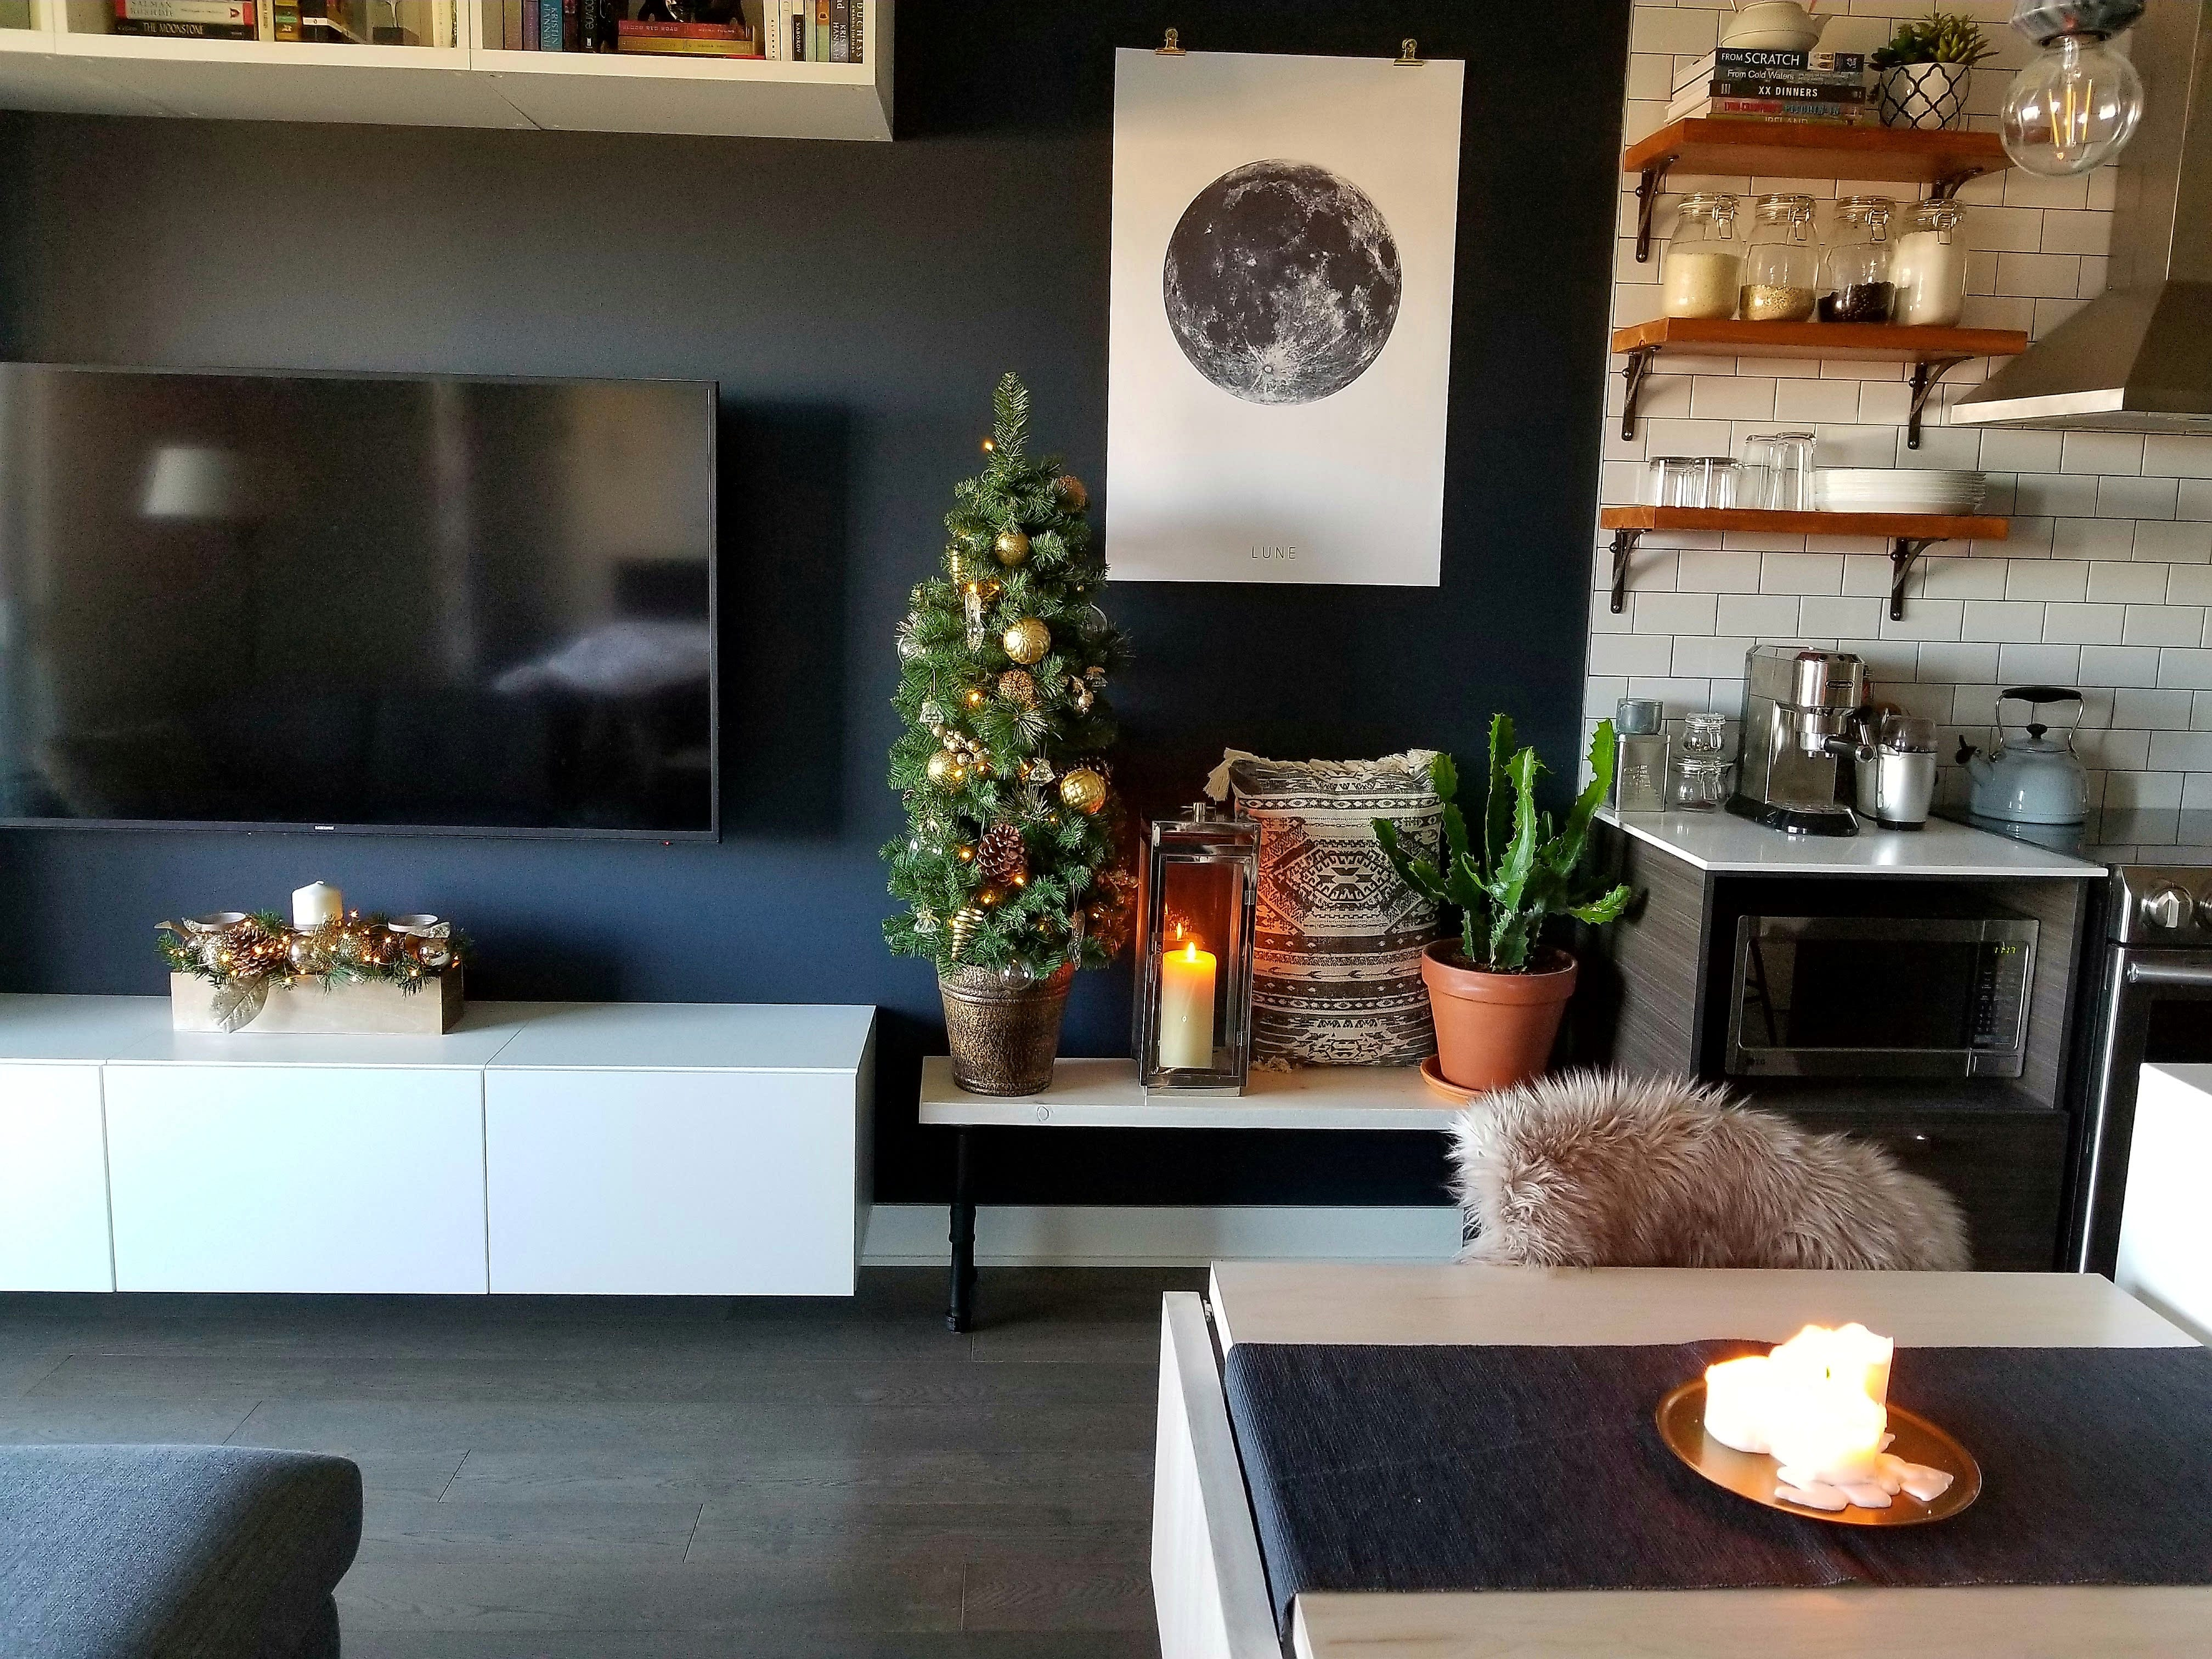 5 easy holiday decorating ideas for small spaces